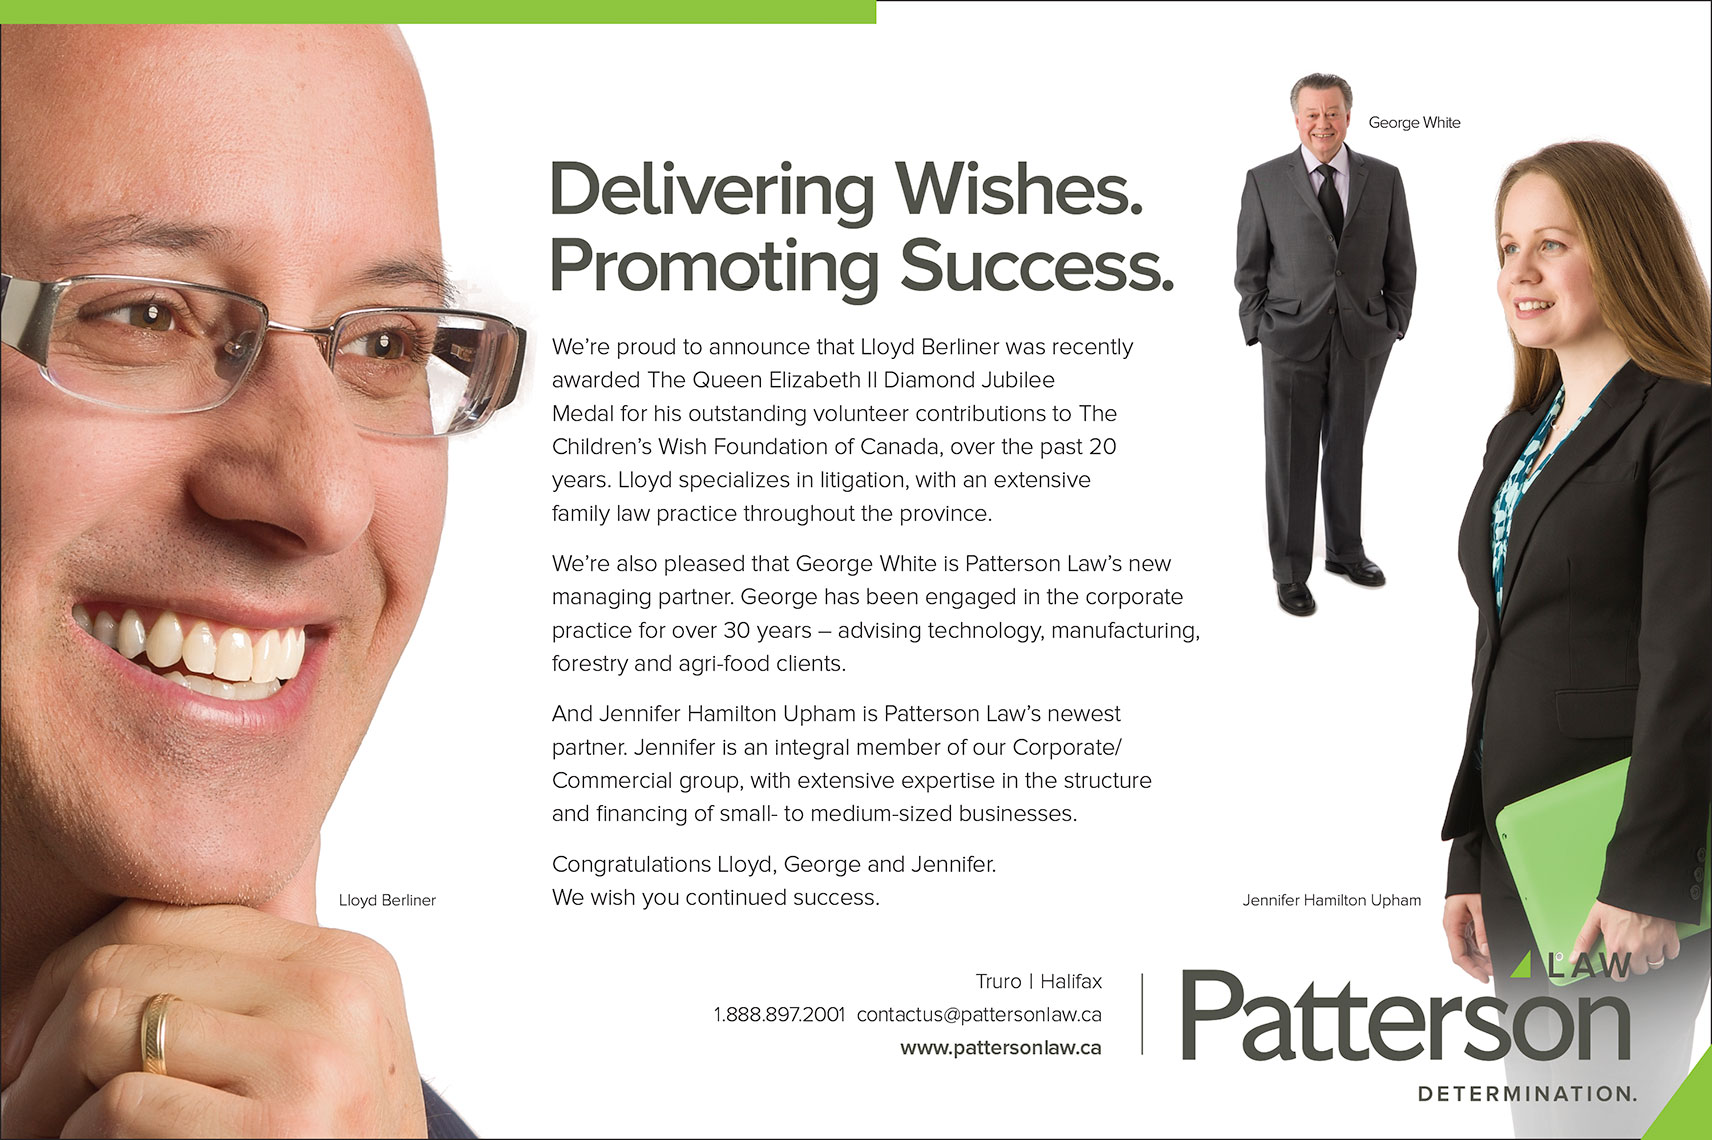 Patterson Law Ad